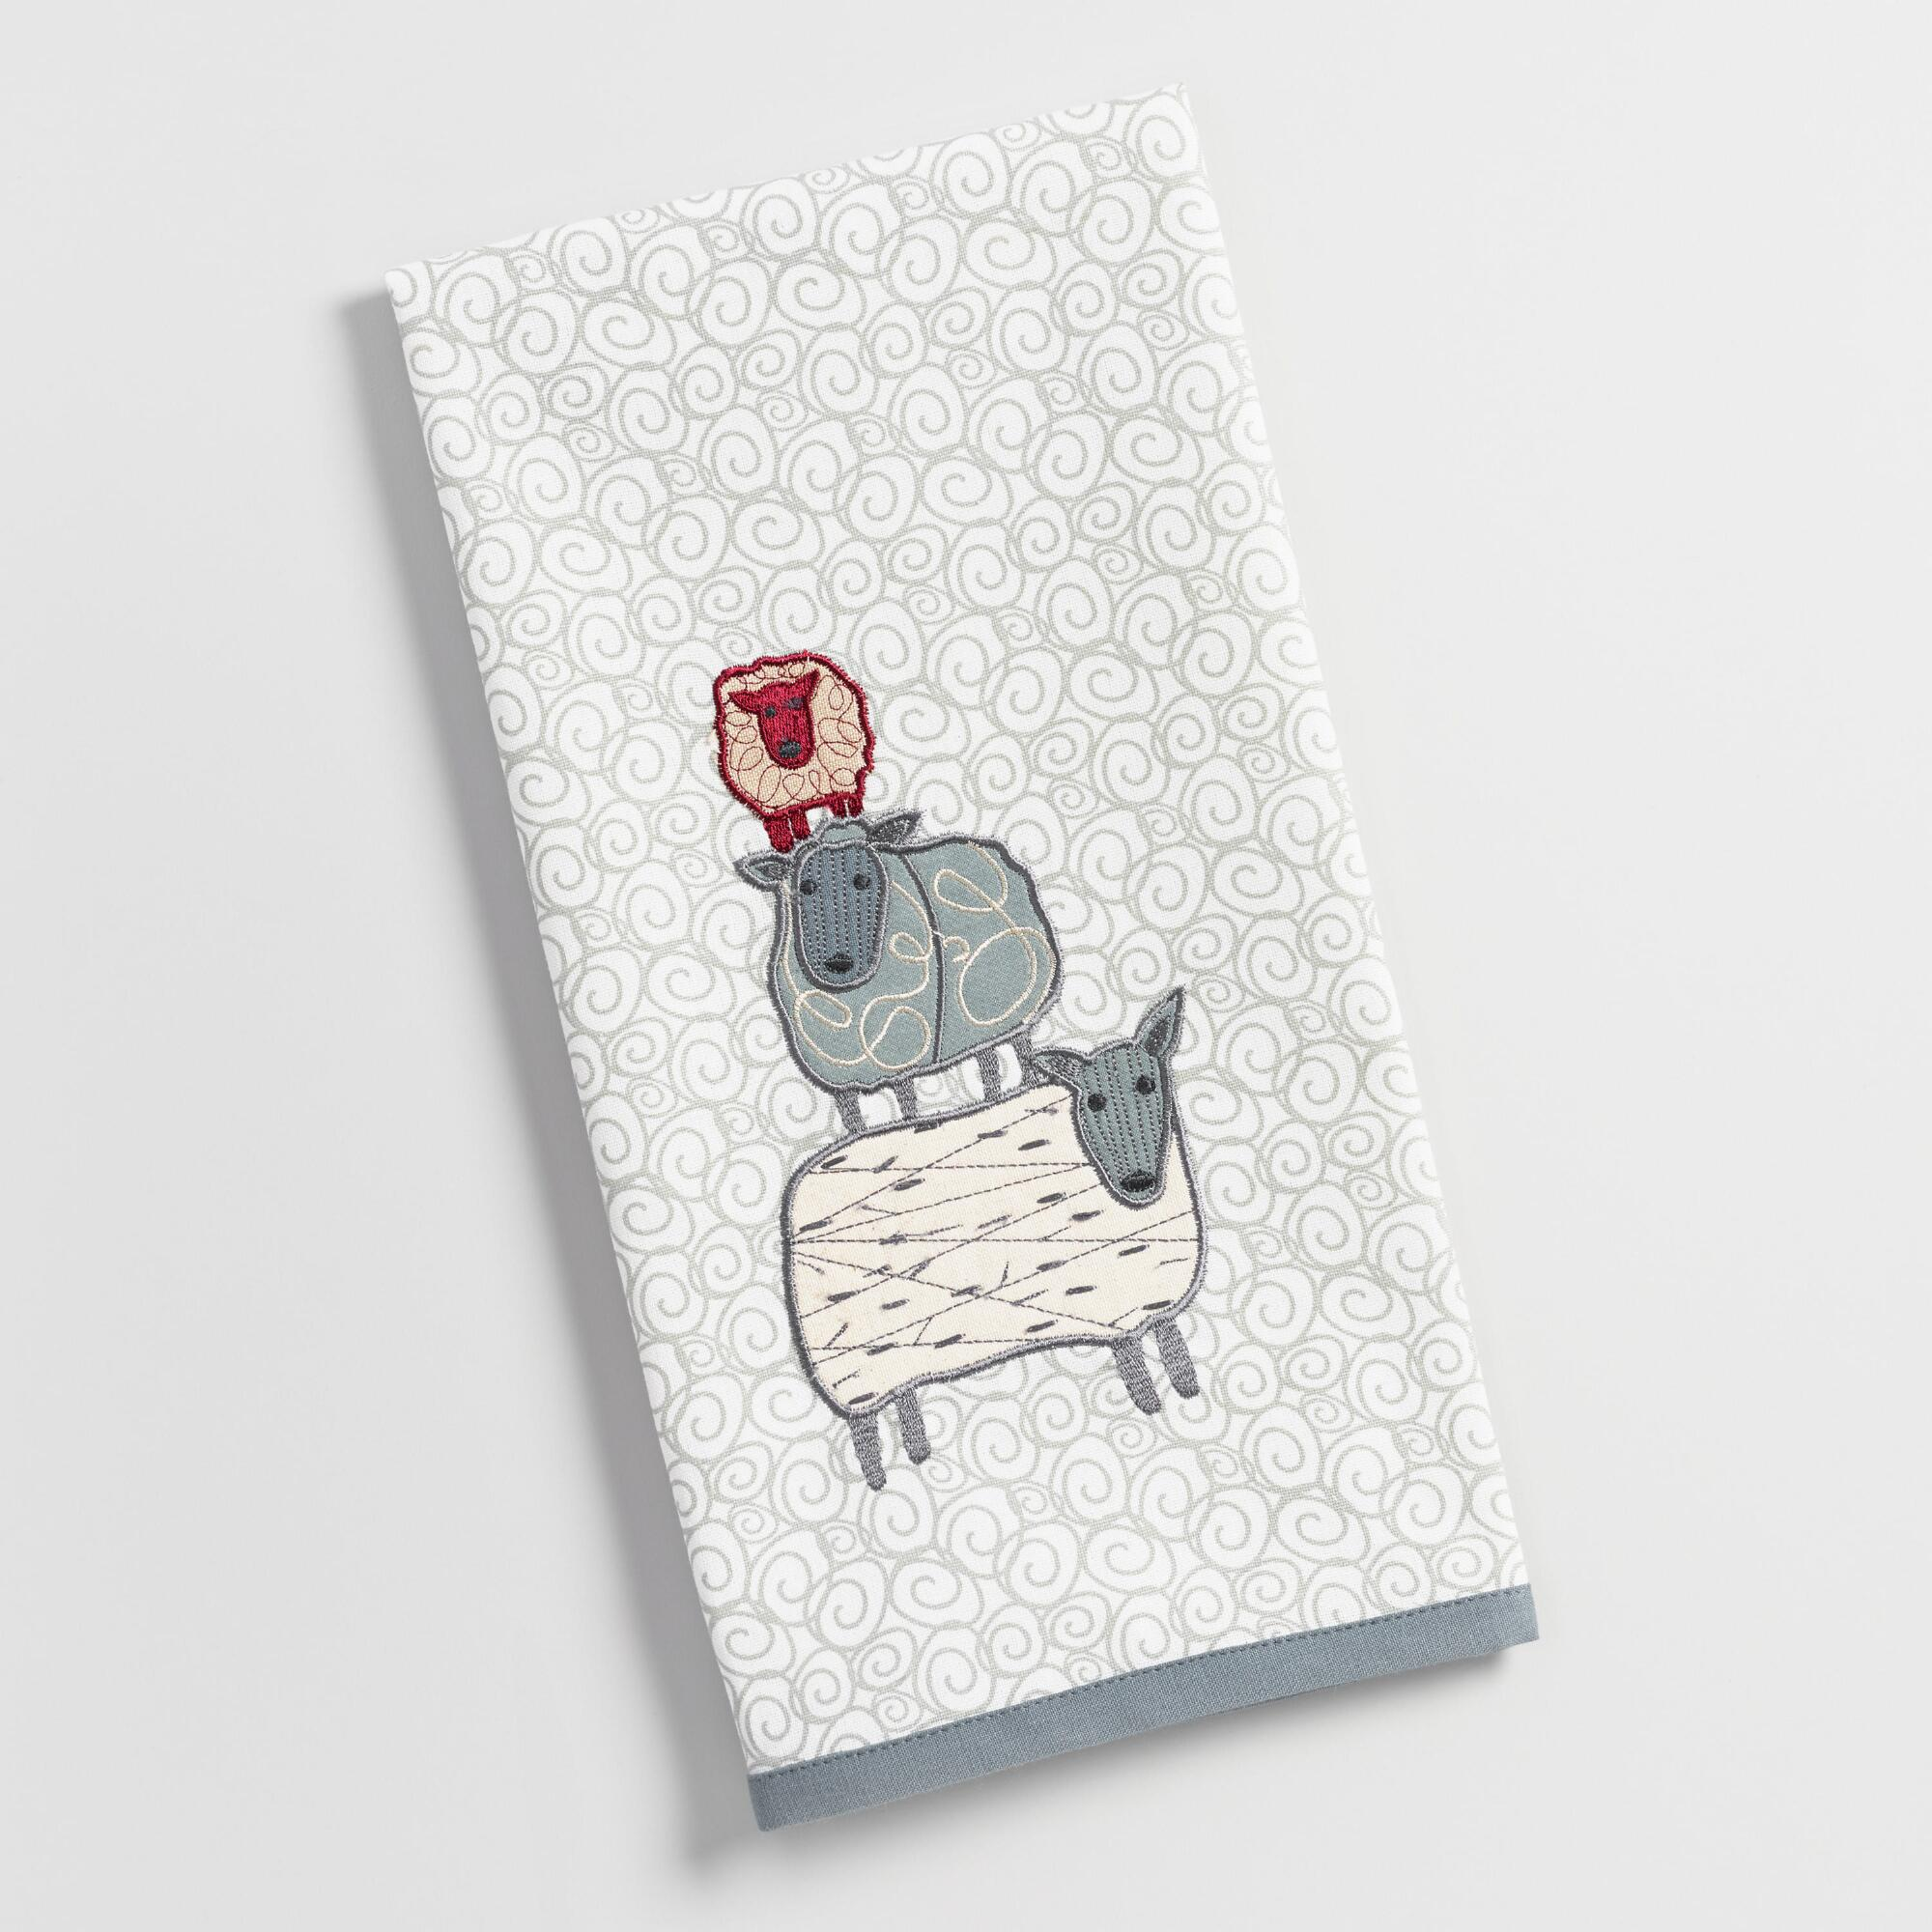 Embroidered Towels Online: Embroidered Sheep Kitchen Towel